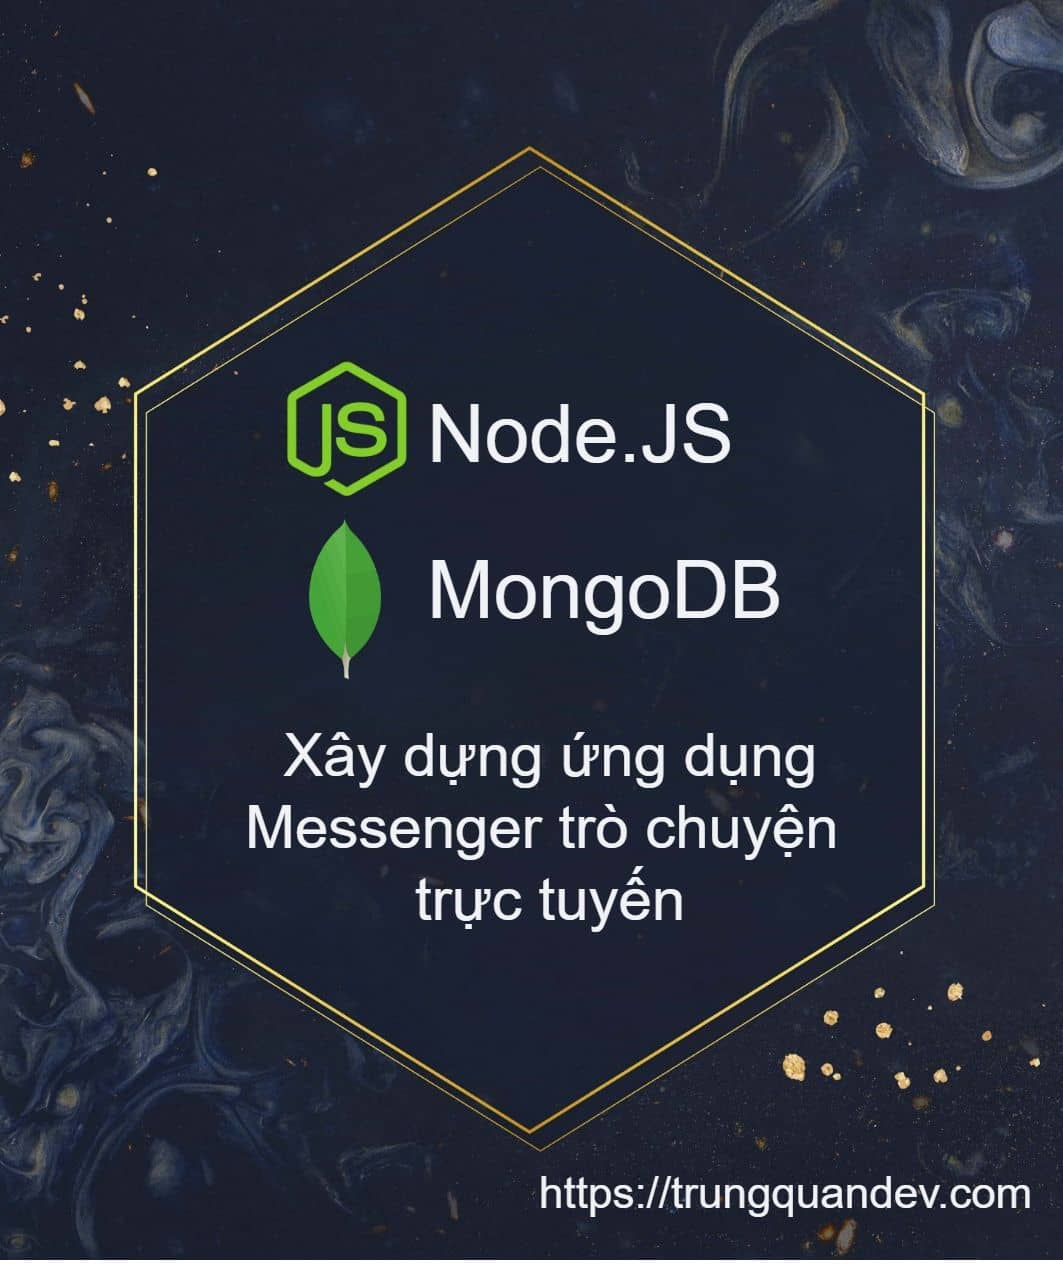 nodejs-mongodb-messenger-real-time-trungquandev-vertical